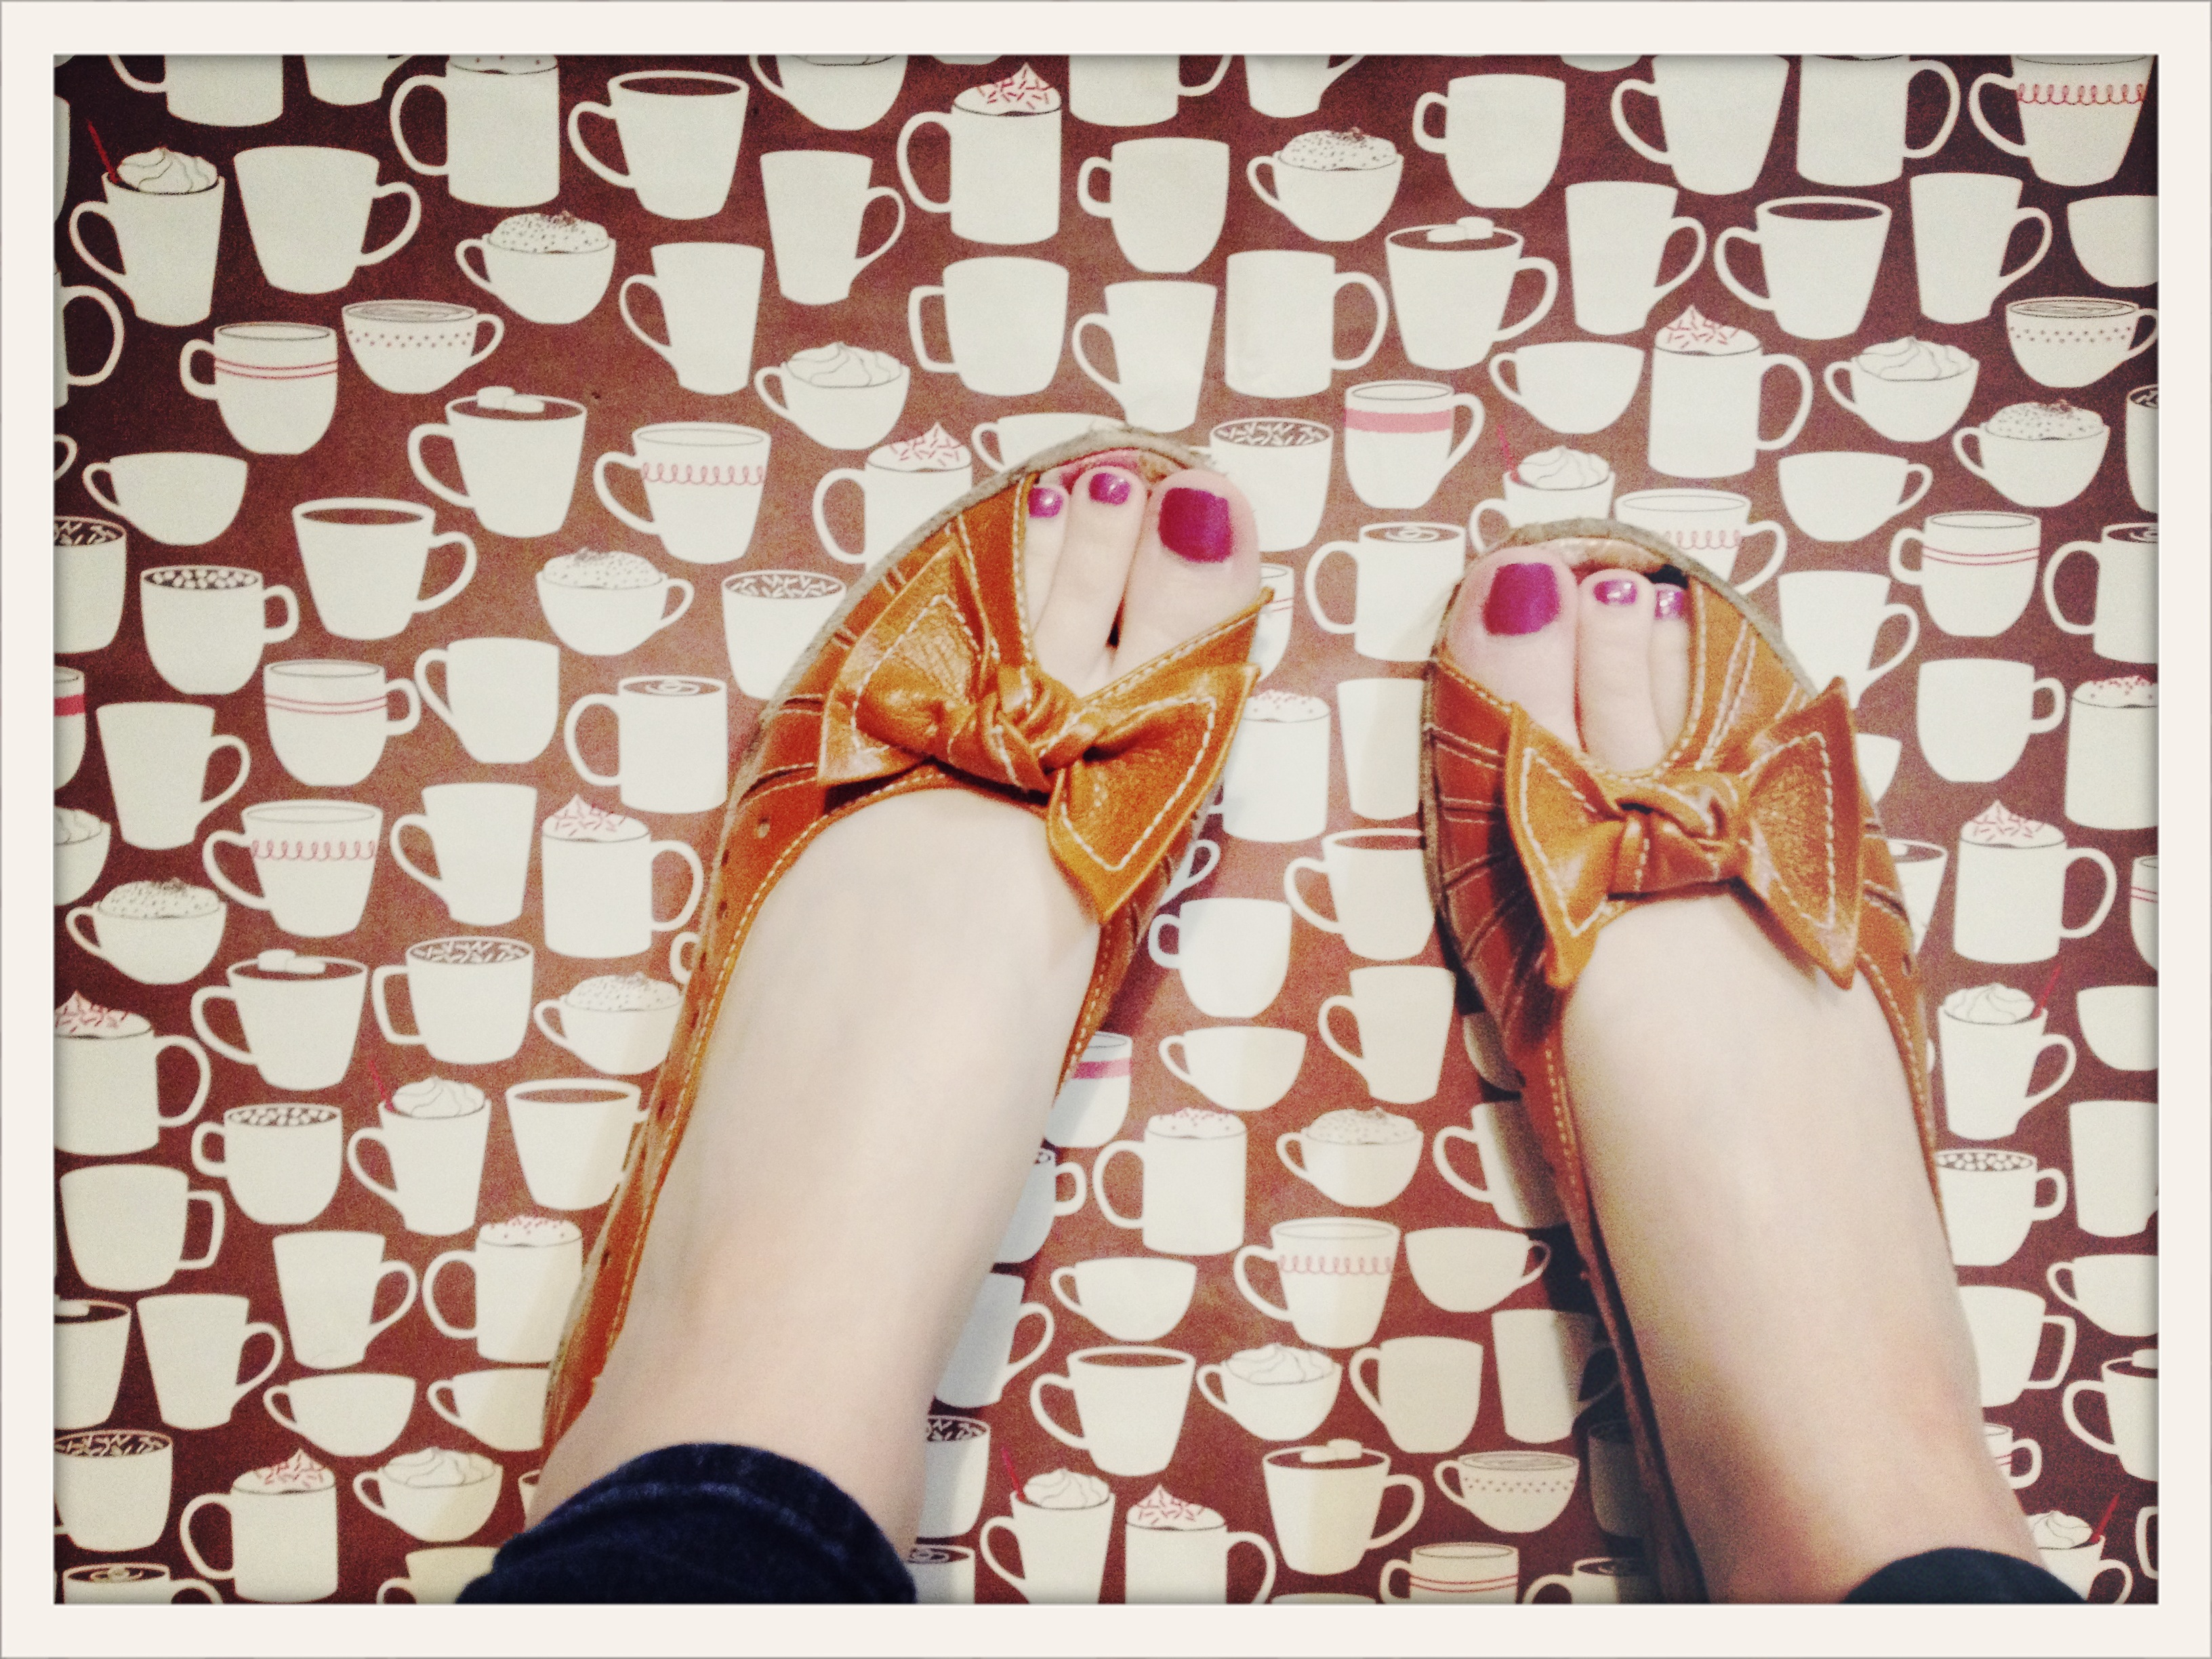 warm sandals on winter cups